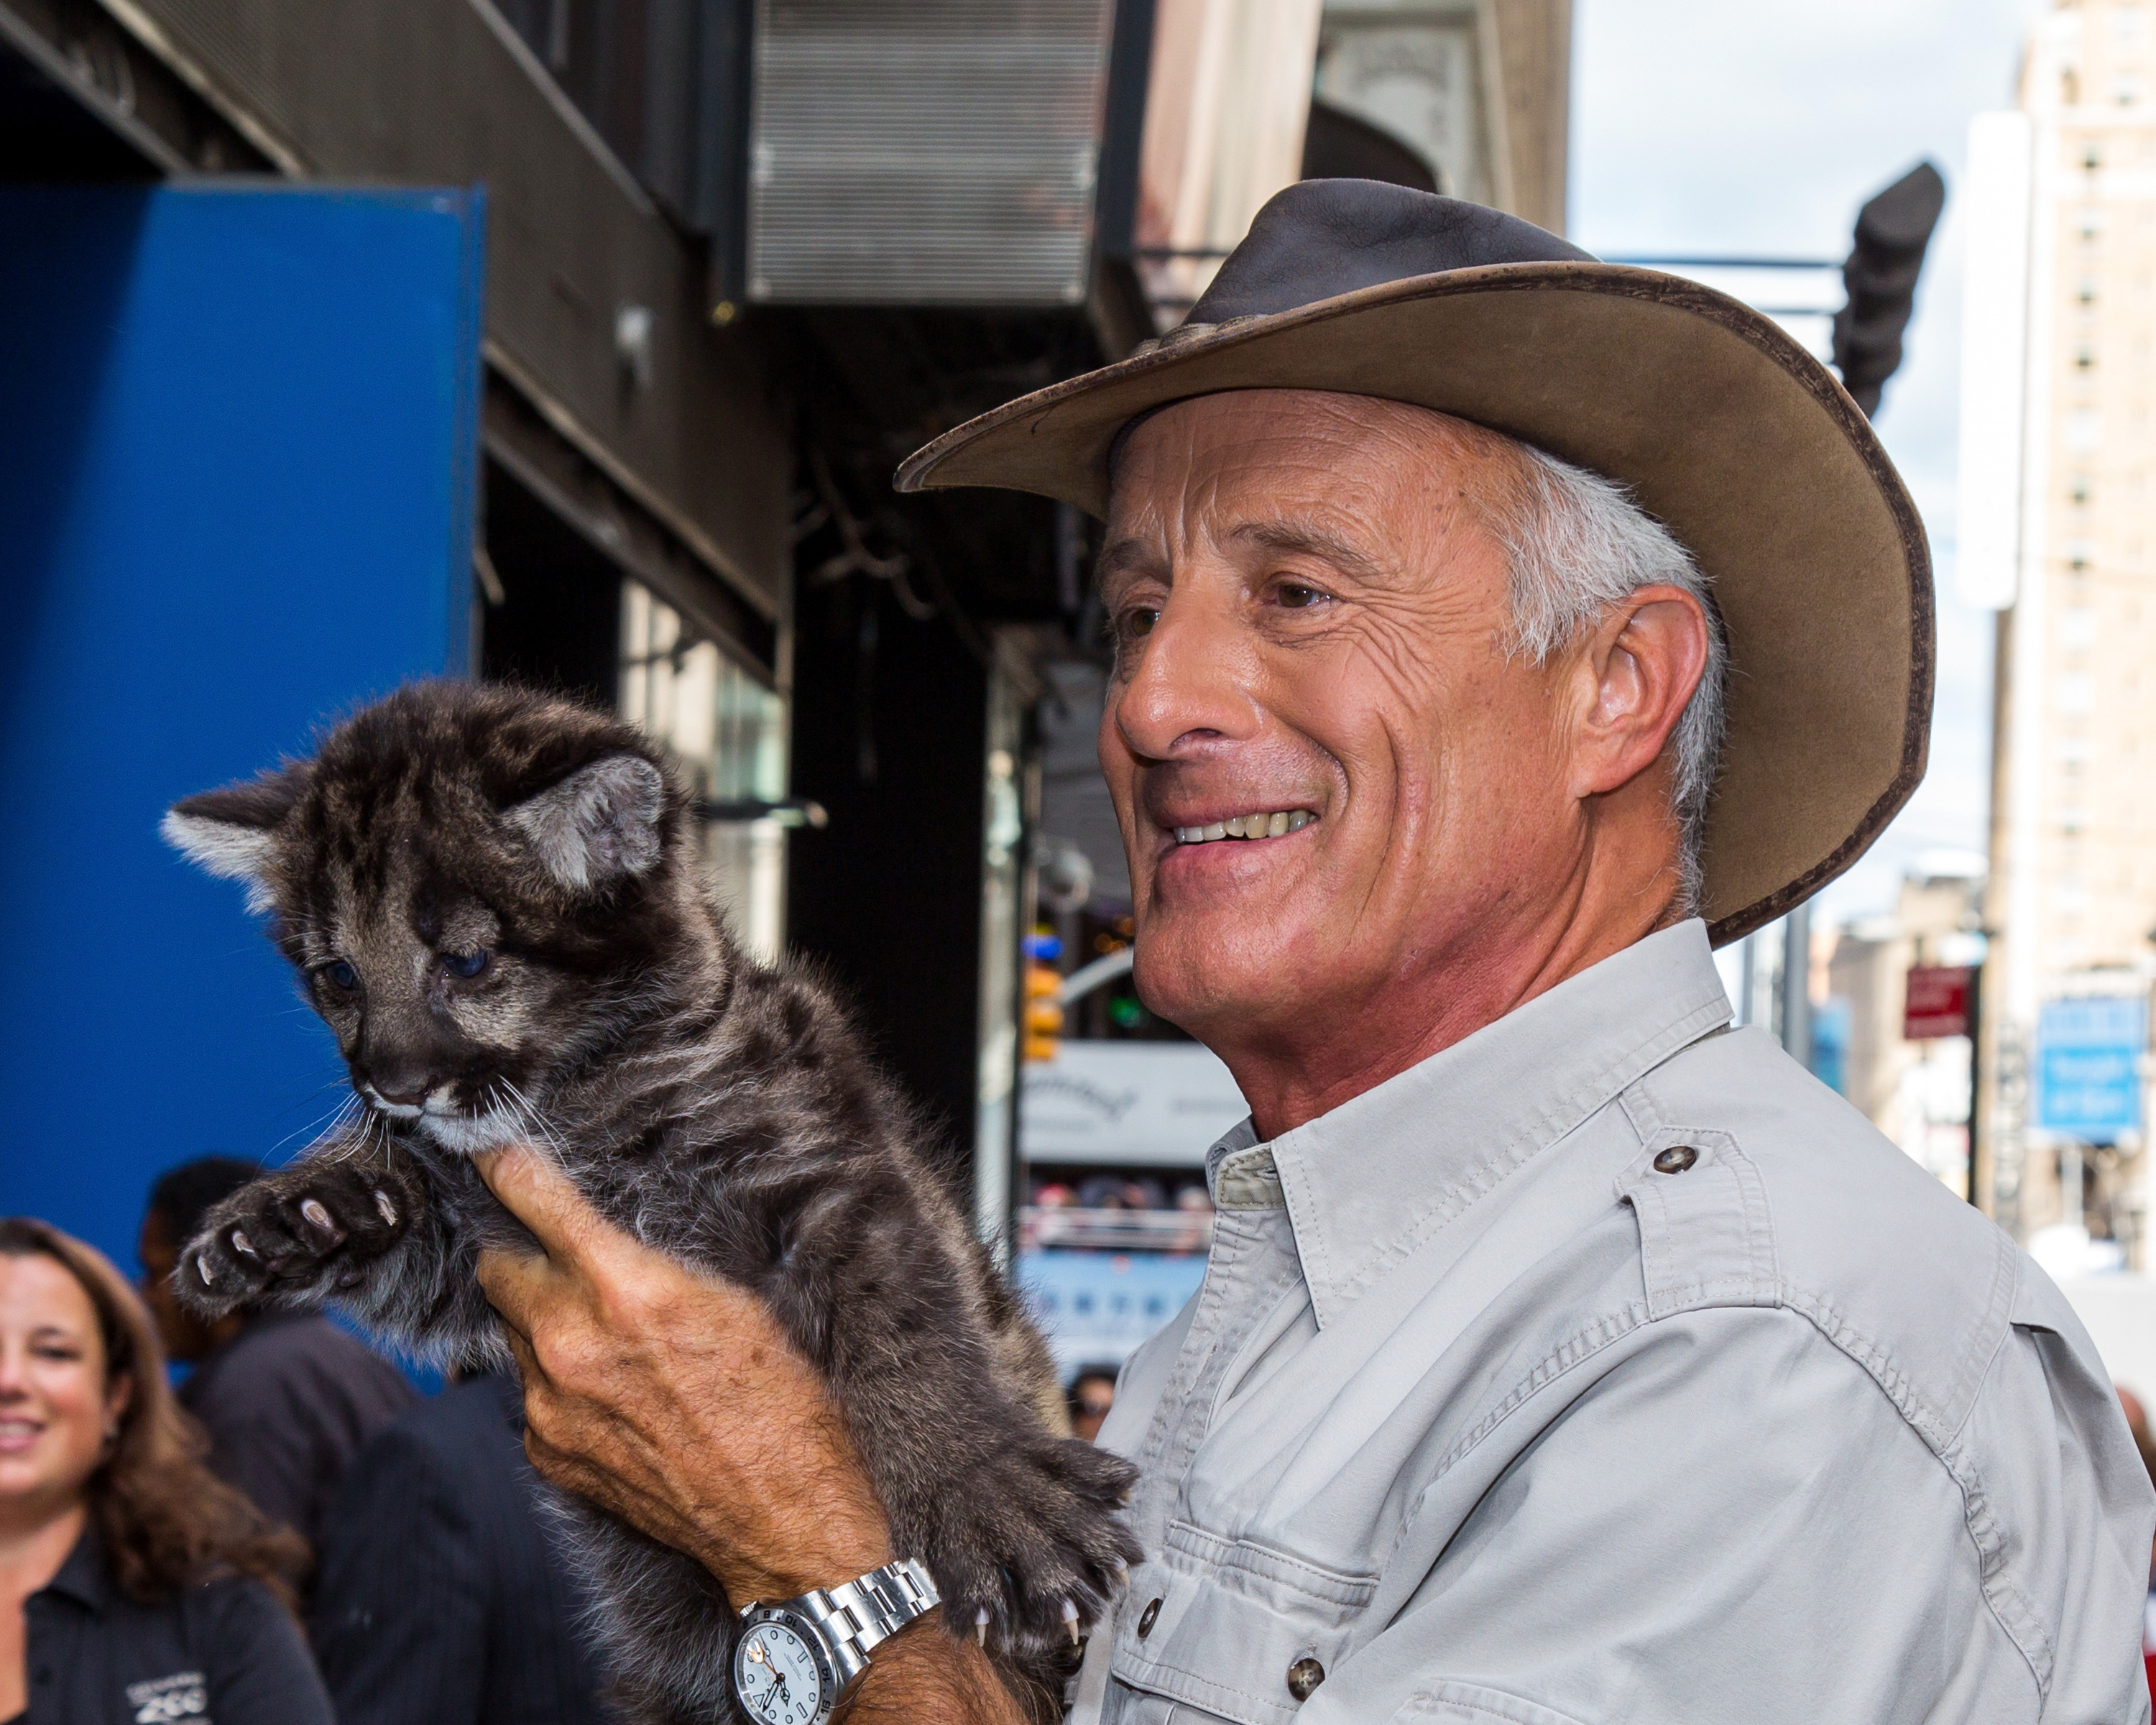 Jack Hanna is seen posing with black mountain lion cub at 'Good Morning America' on Sept. 22, 2014 in New York City.